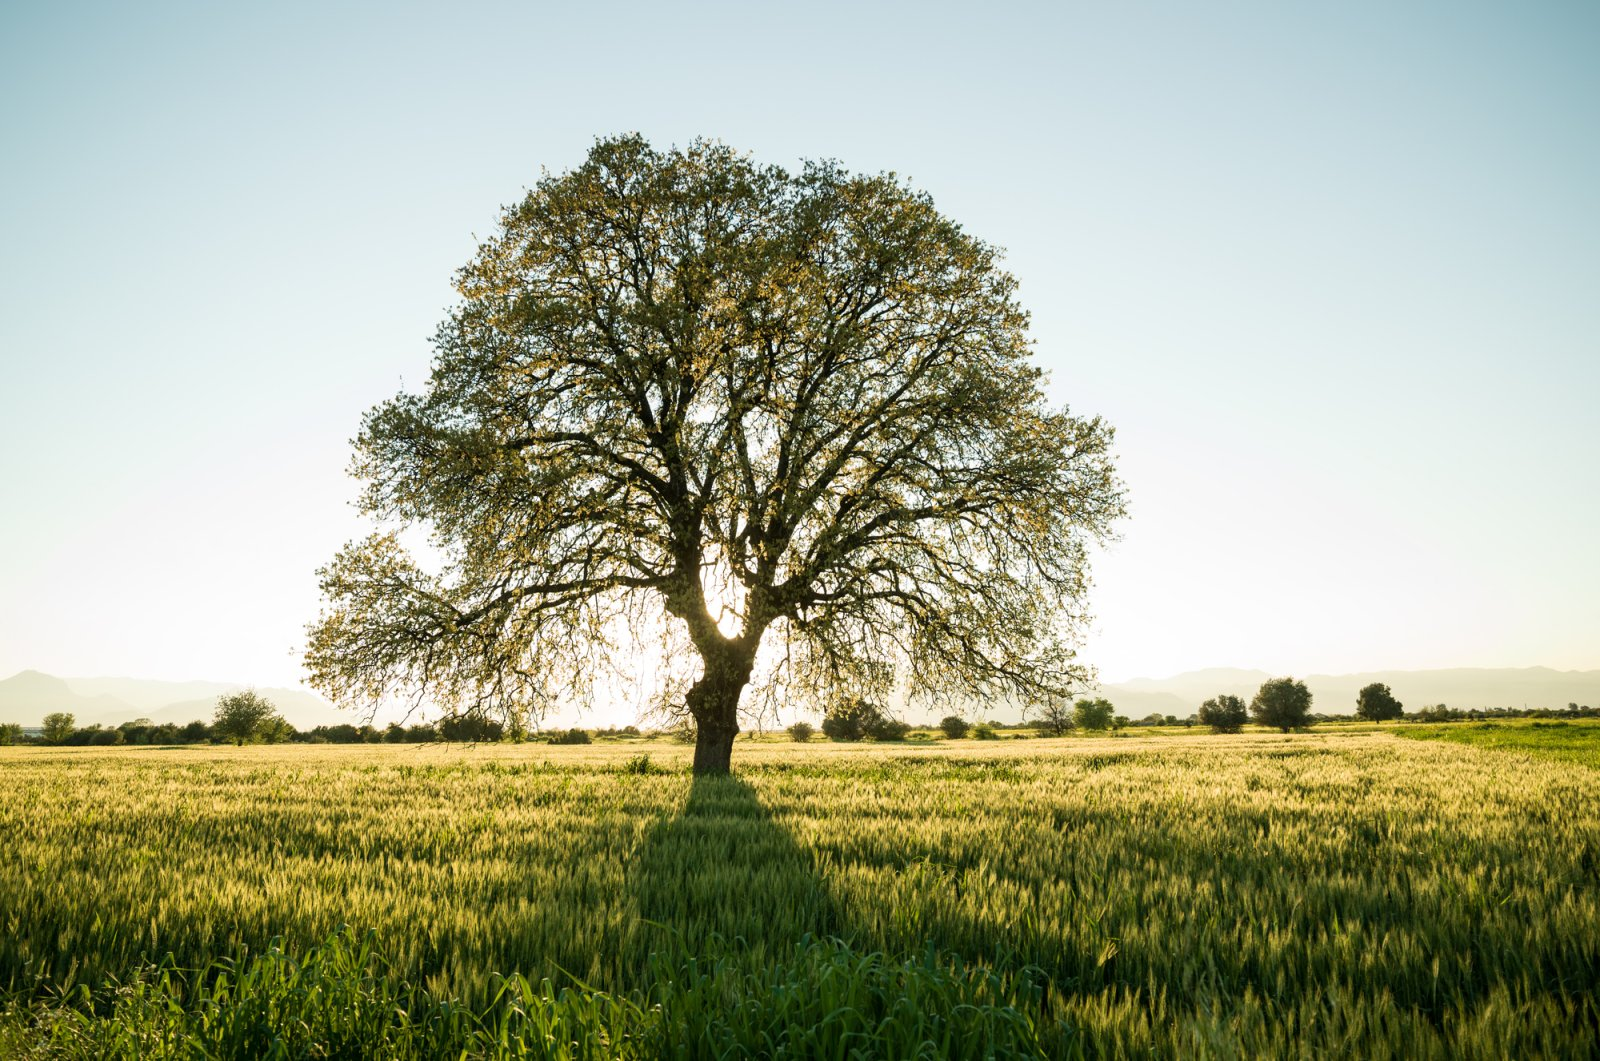 From oaks, cedars and yews to olive trees and sycamores, there are many impressive heritage trees scattered across Turkey. (iStock Photo)